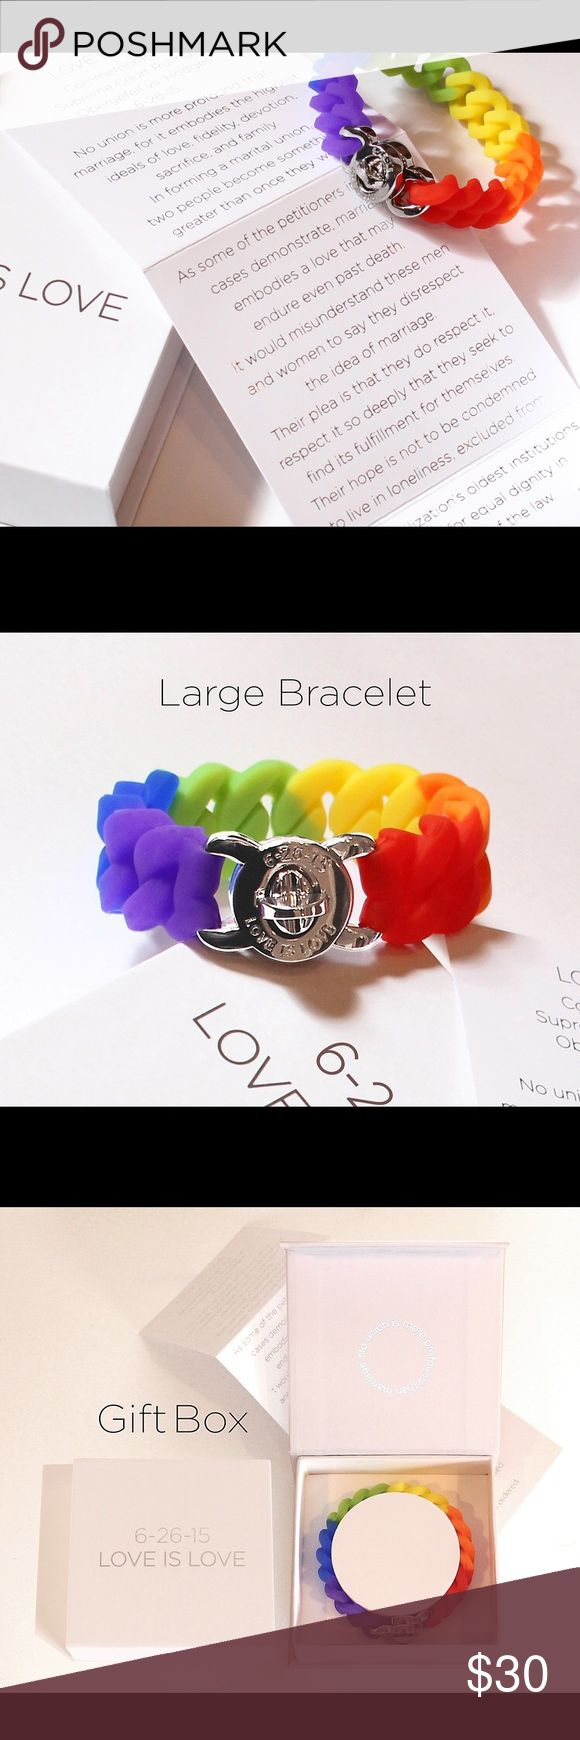 PRIDE: Love is Love Bracelet The Show Your PRIDE: Love is Love Limited Edition commemorating the 6-25-15 Supreme Court Decision on marriage equality.  Each bracelet comes packaged in a presentation box with magnetized closure and includes an excerpt from Justice Kennedy's majority opinion. Silicon with metal clasp closure. Share of proceeds supports groups serving at-risk LGBT youth. Supplies limited. Accessories